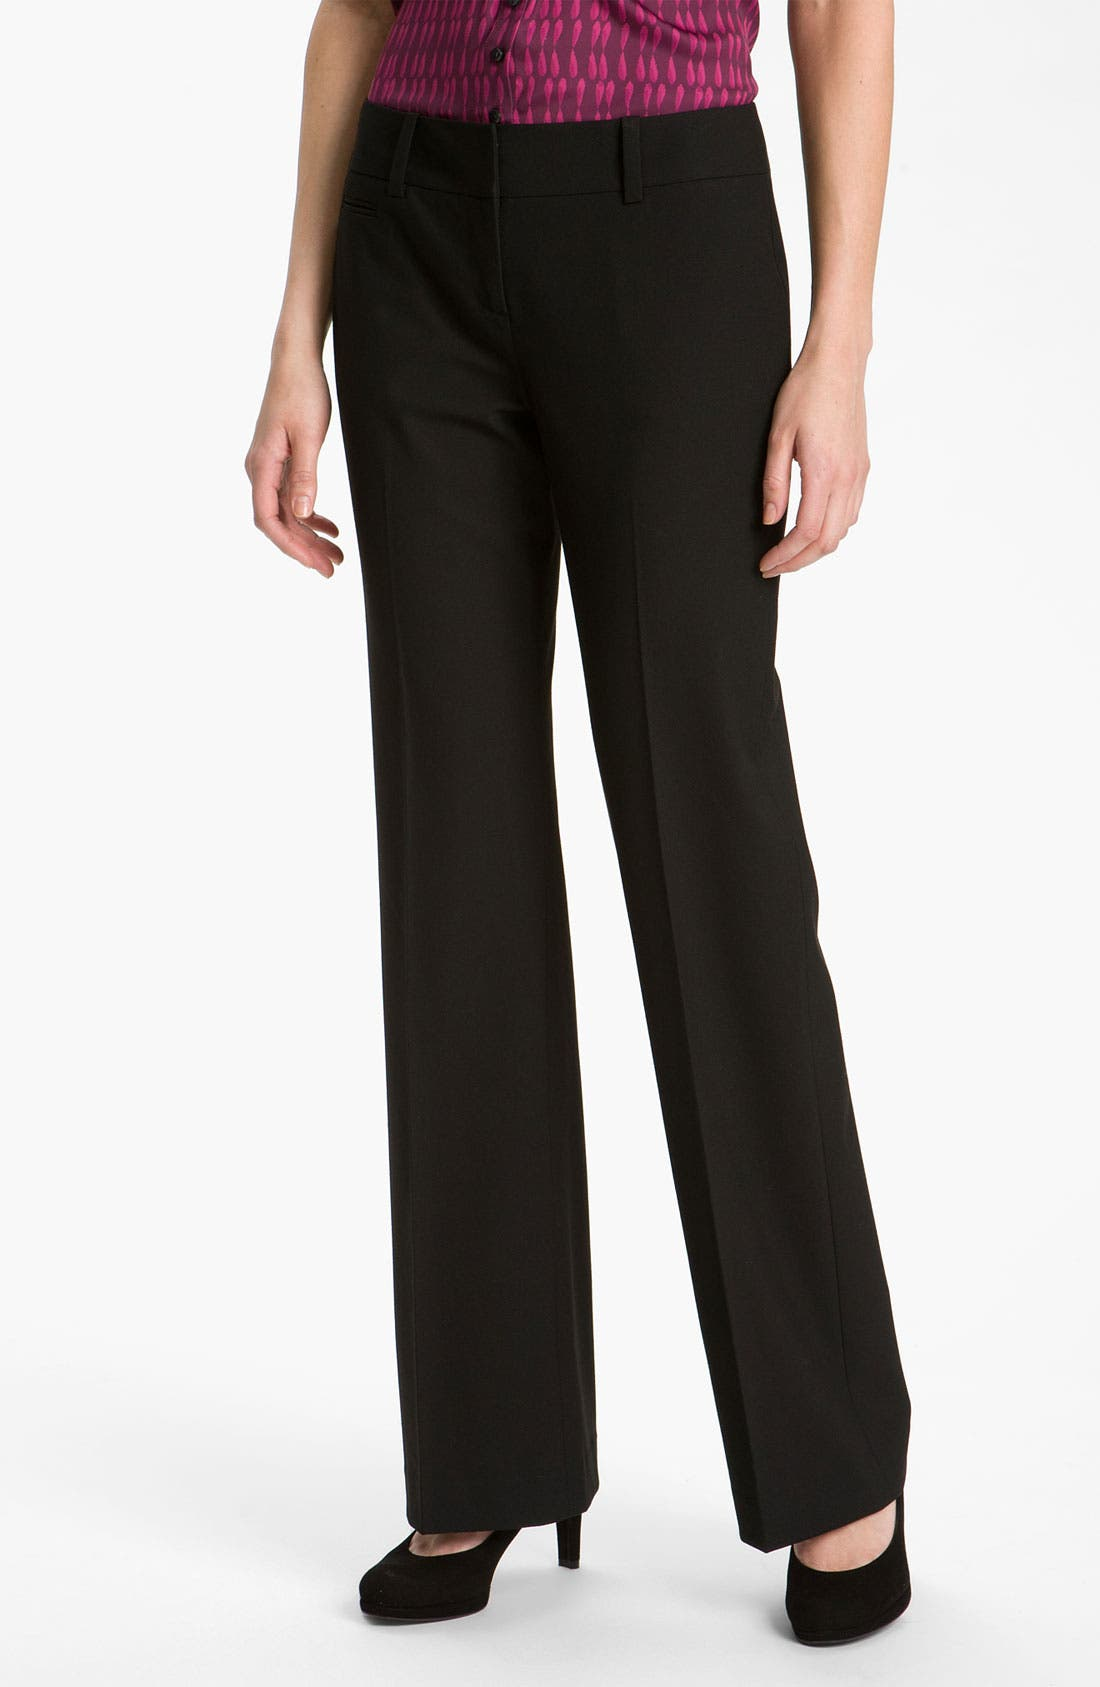 Alternate Image 1 Selected - Halogen® 'Taylor' Curvy Fit Pants